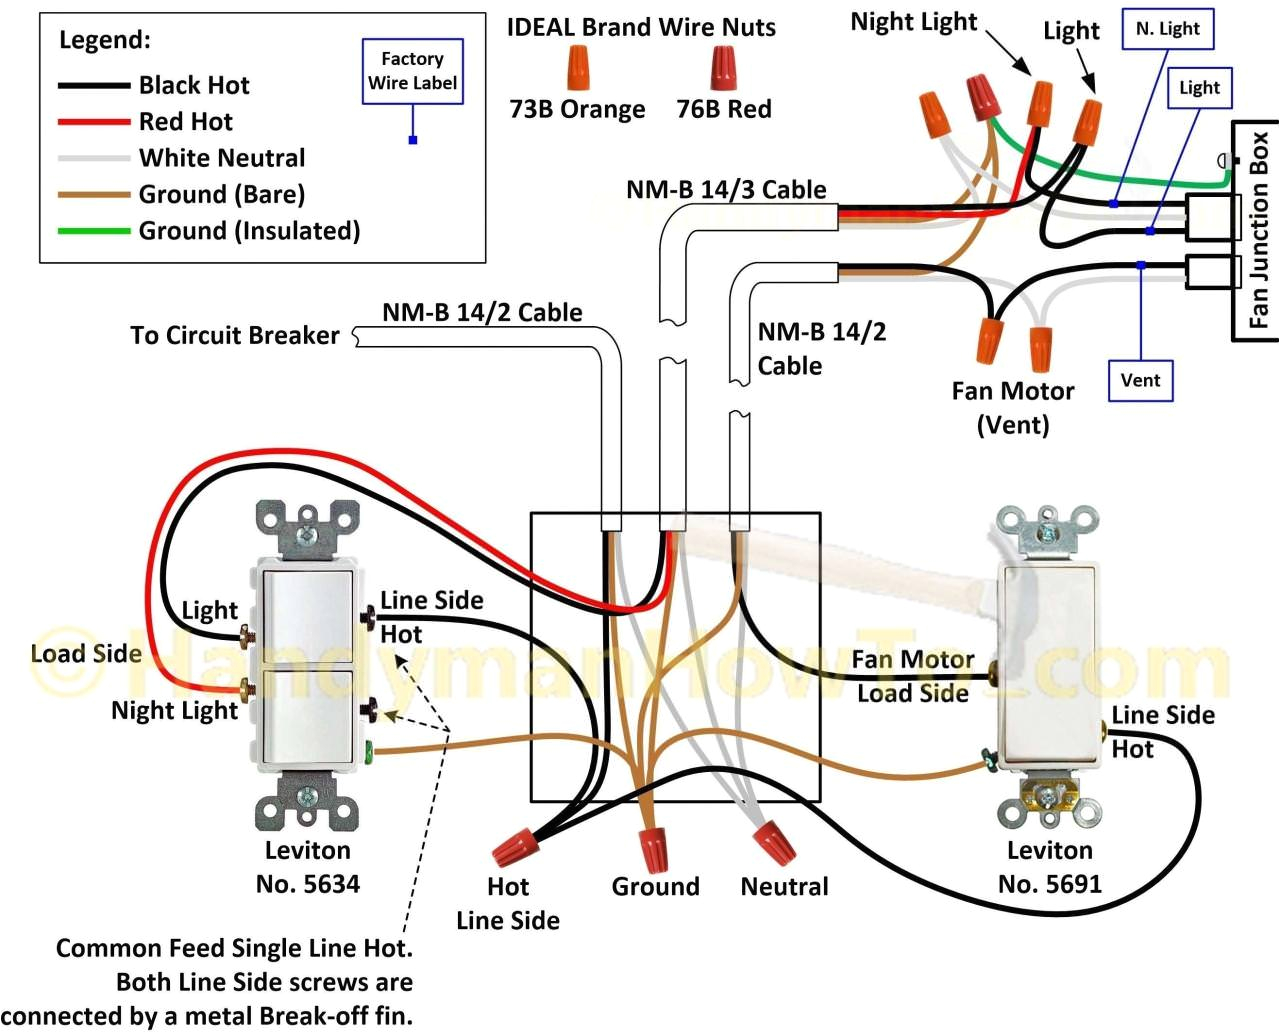 pentair pumps wiring diagrams wire management u0026 wiring diagram mix wiring diagram pentair premium wiring